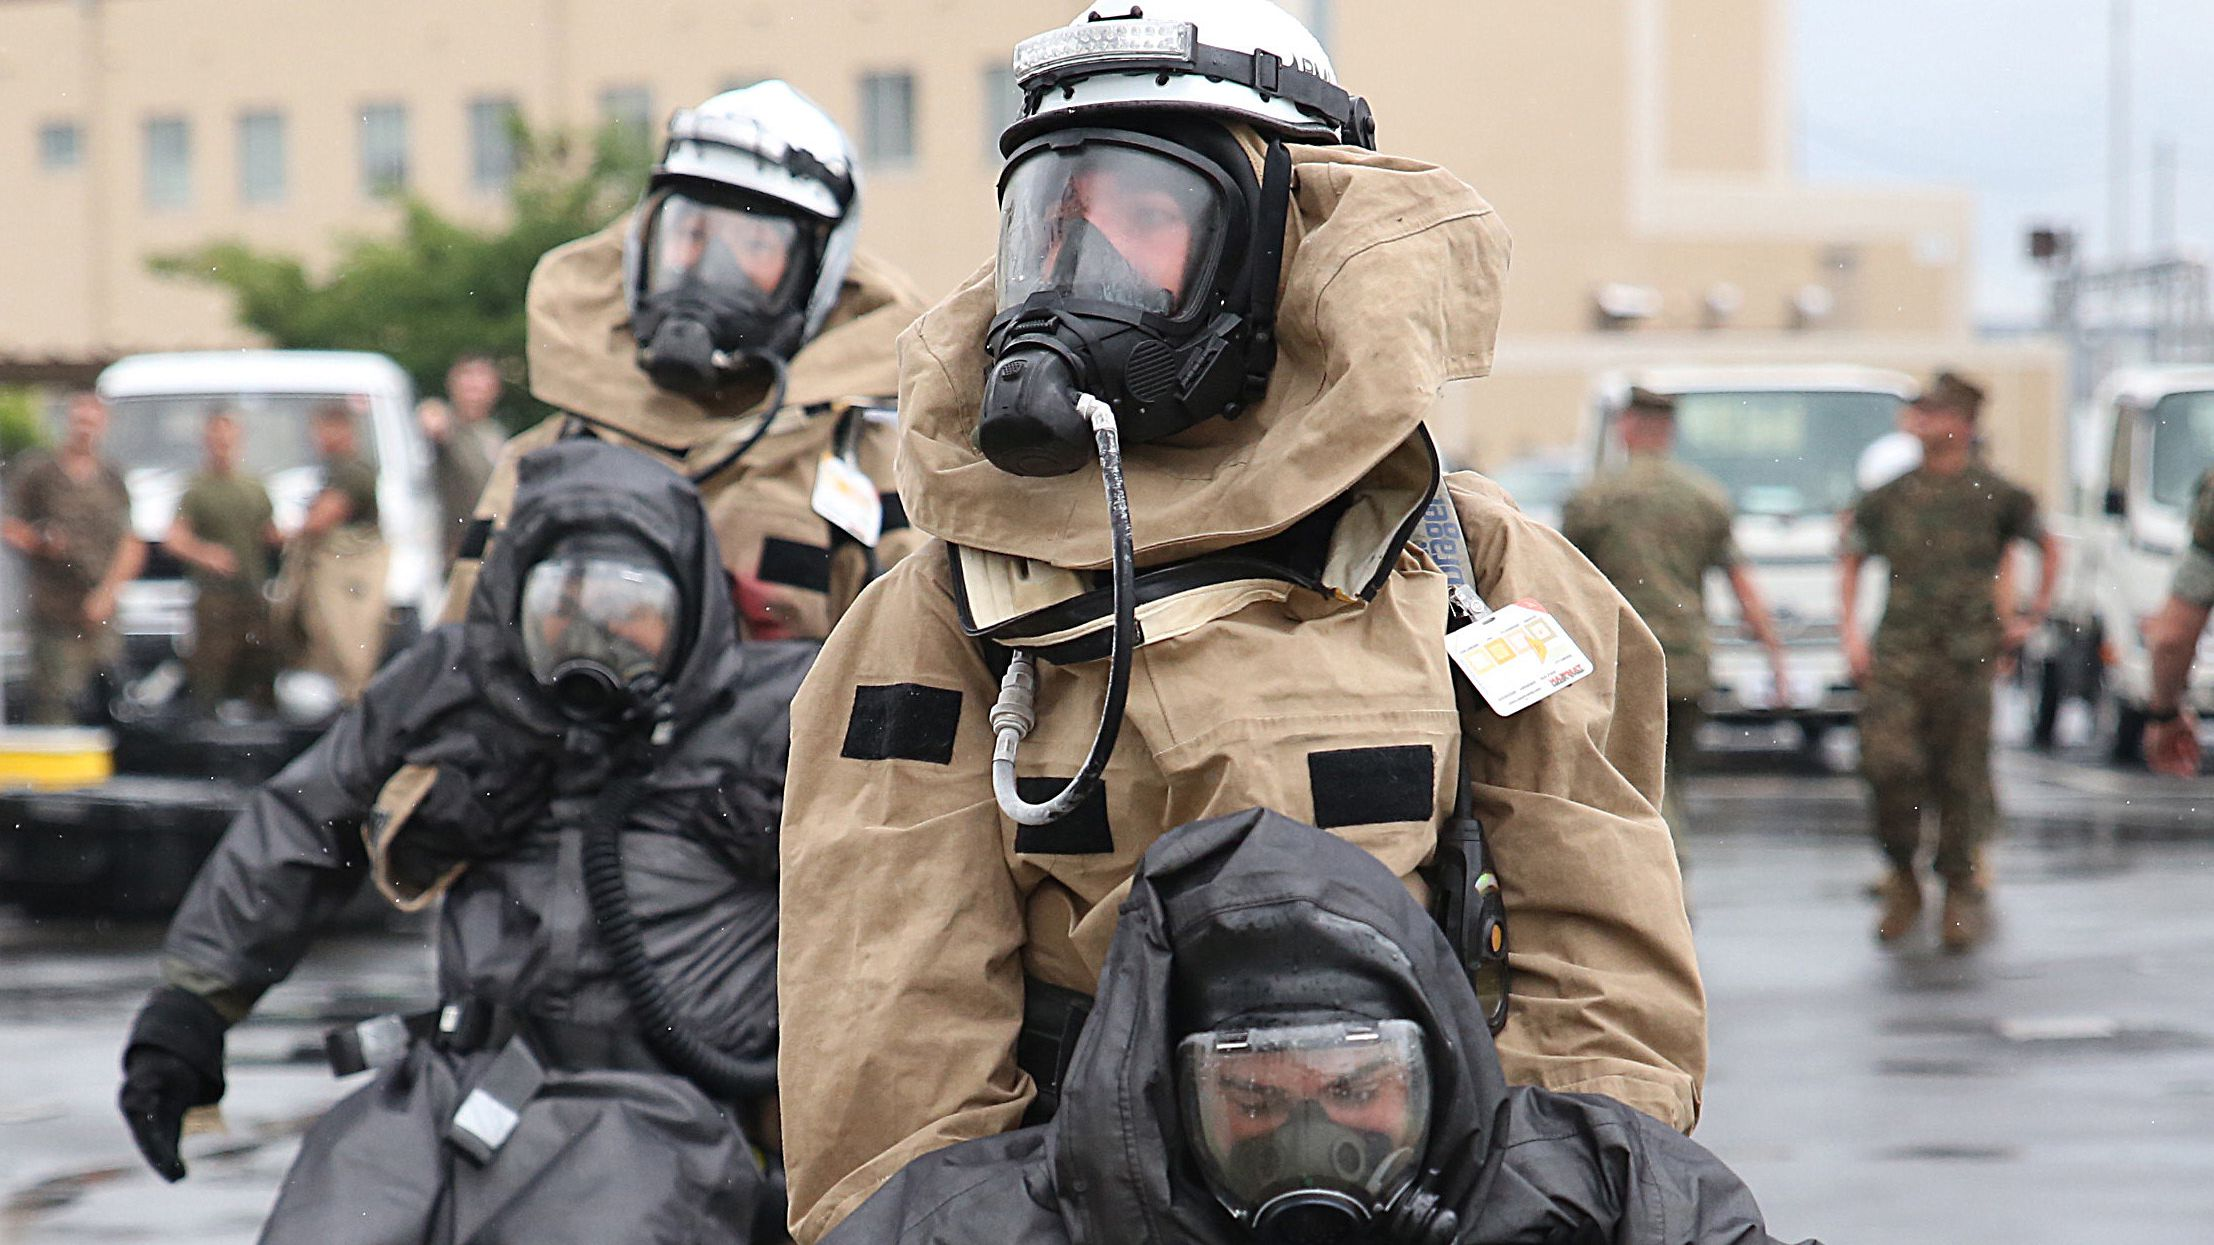 Field 57, Chemical, Biological, Radiological and Nuclear